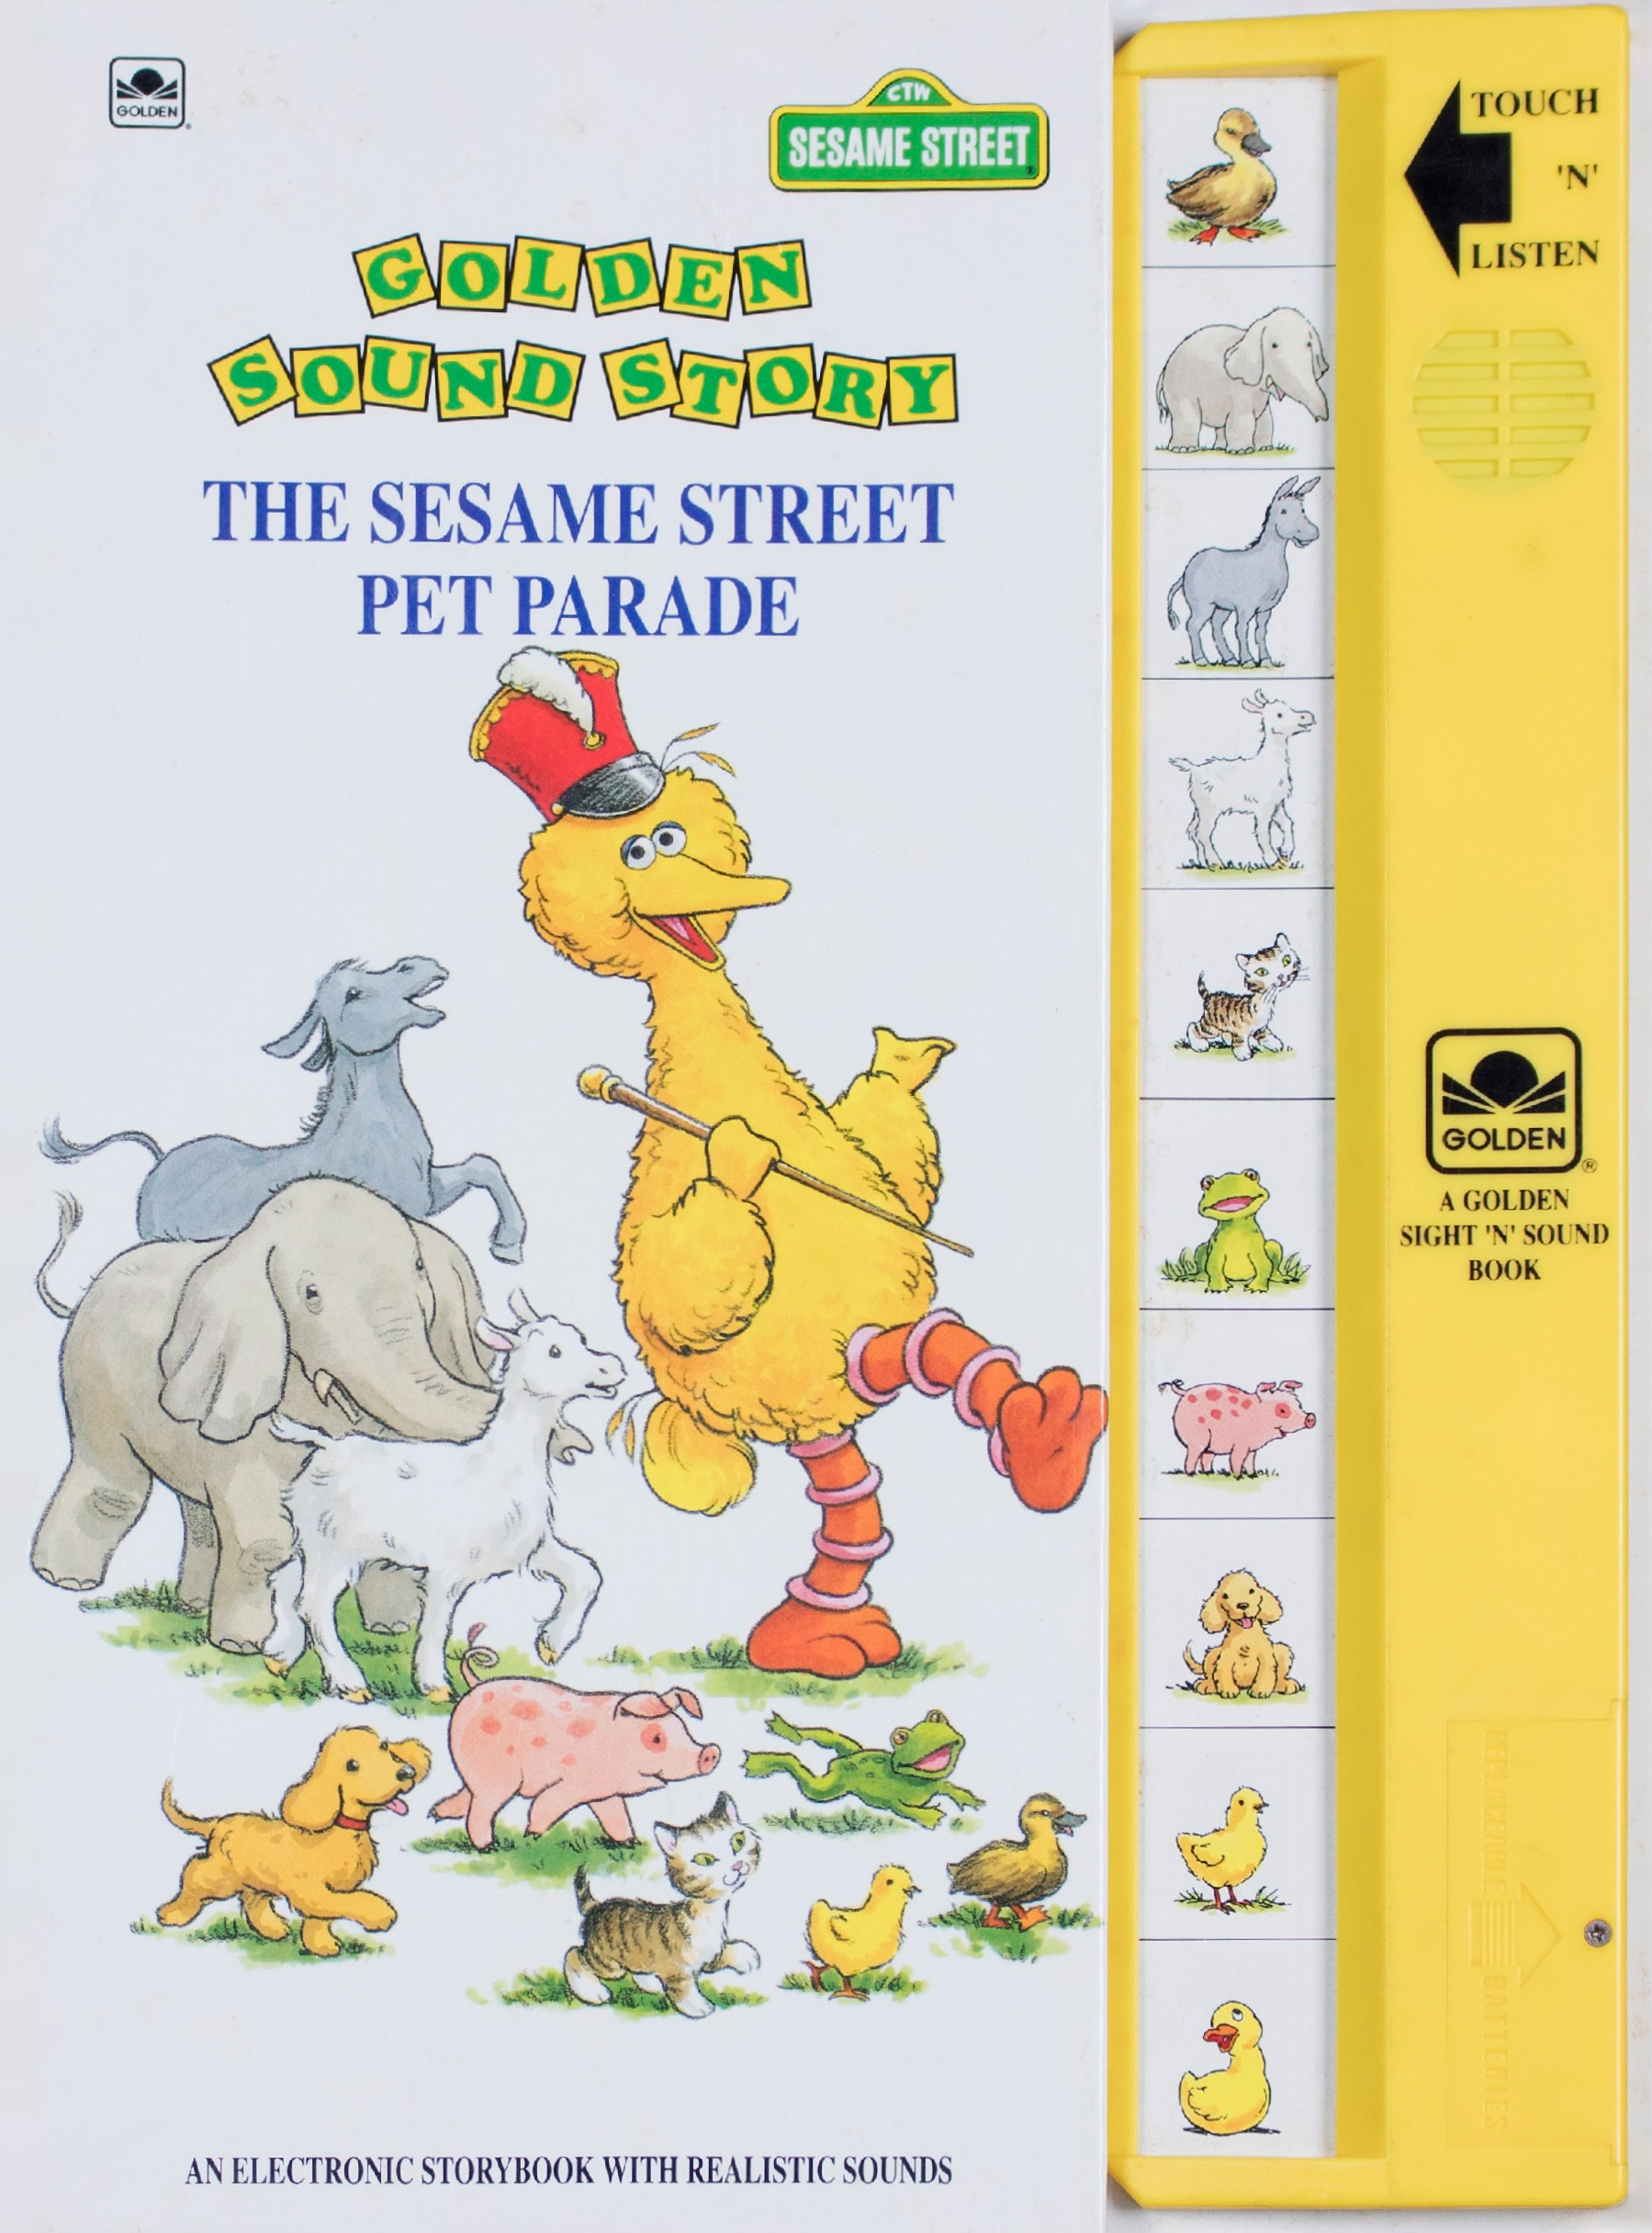 Thesesamestreetpetparade